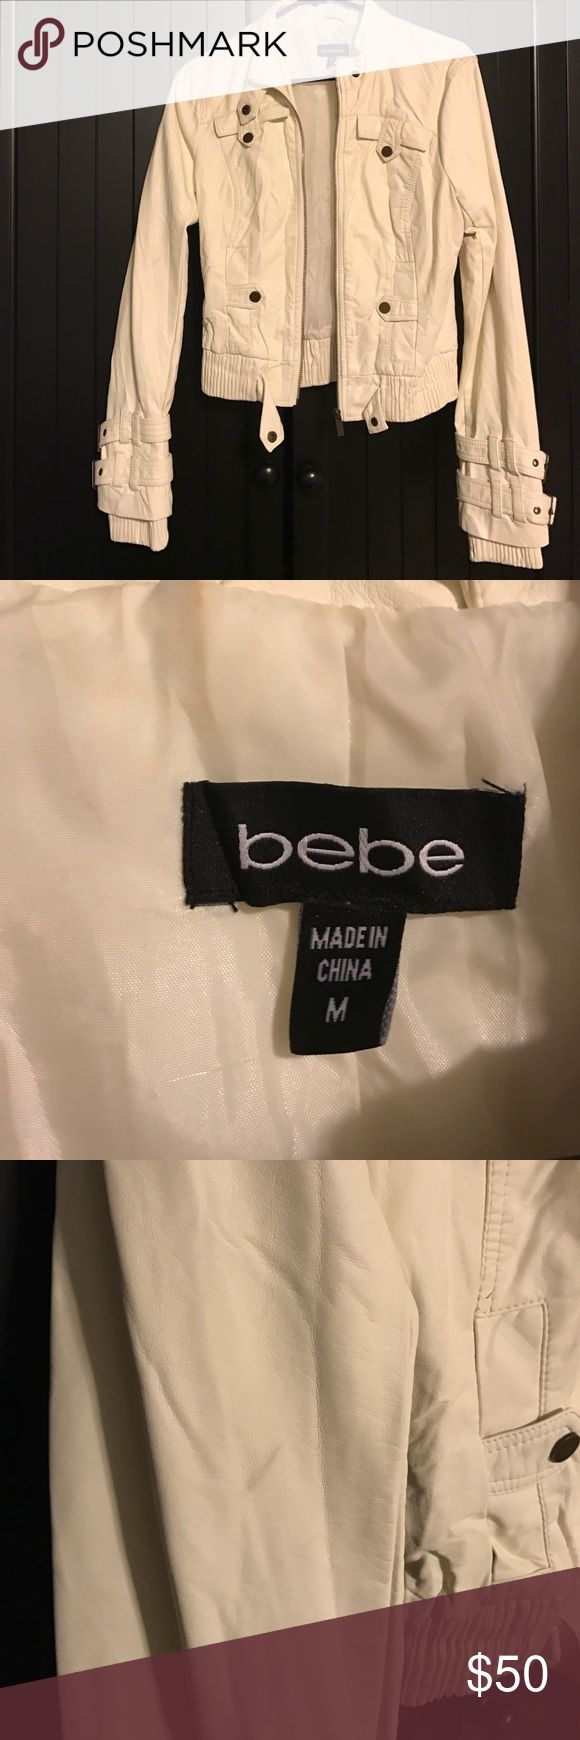 Bebe off white leather jacket Military style / size medium / worn a handful of times. Slight marking in the right sleeve displayed in photo. Interior lining is polyester. bebe Jackets & Coats